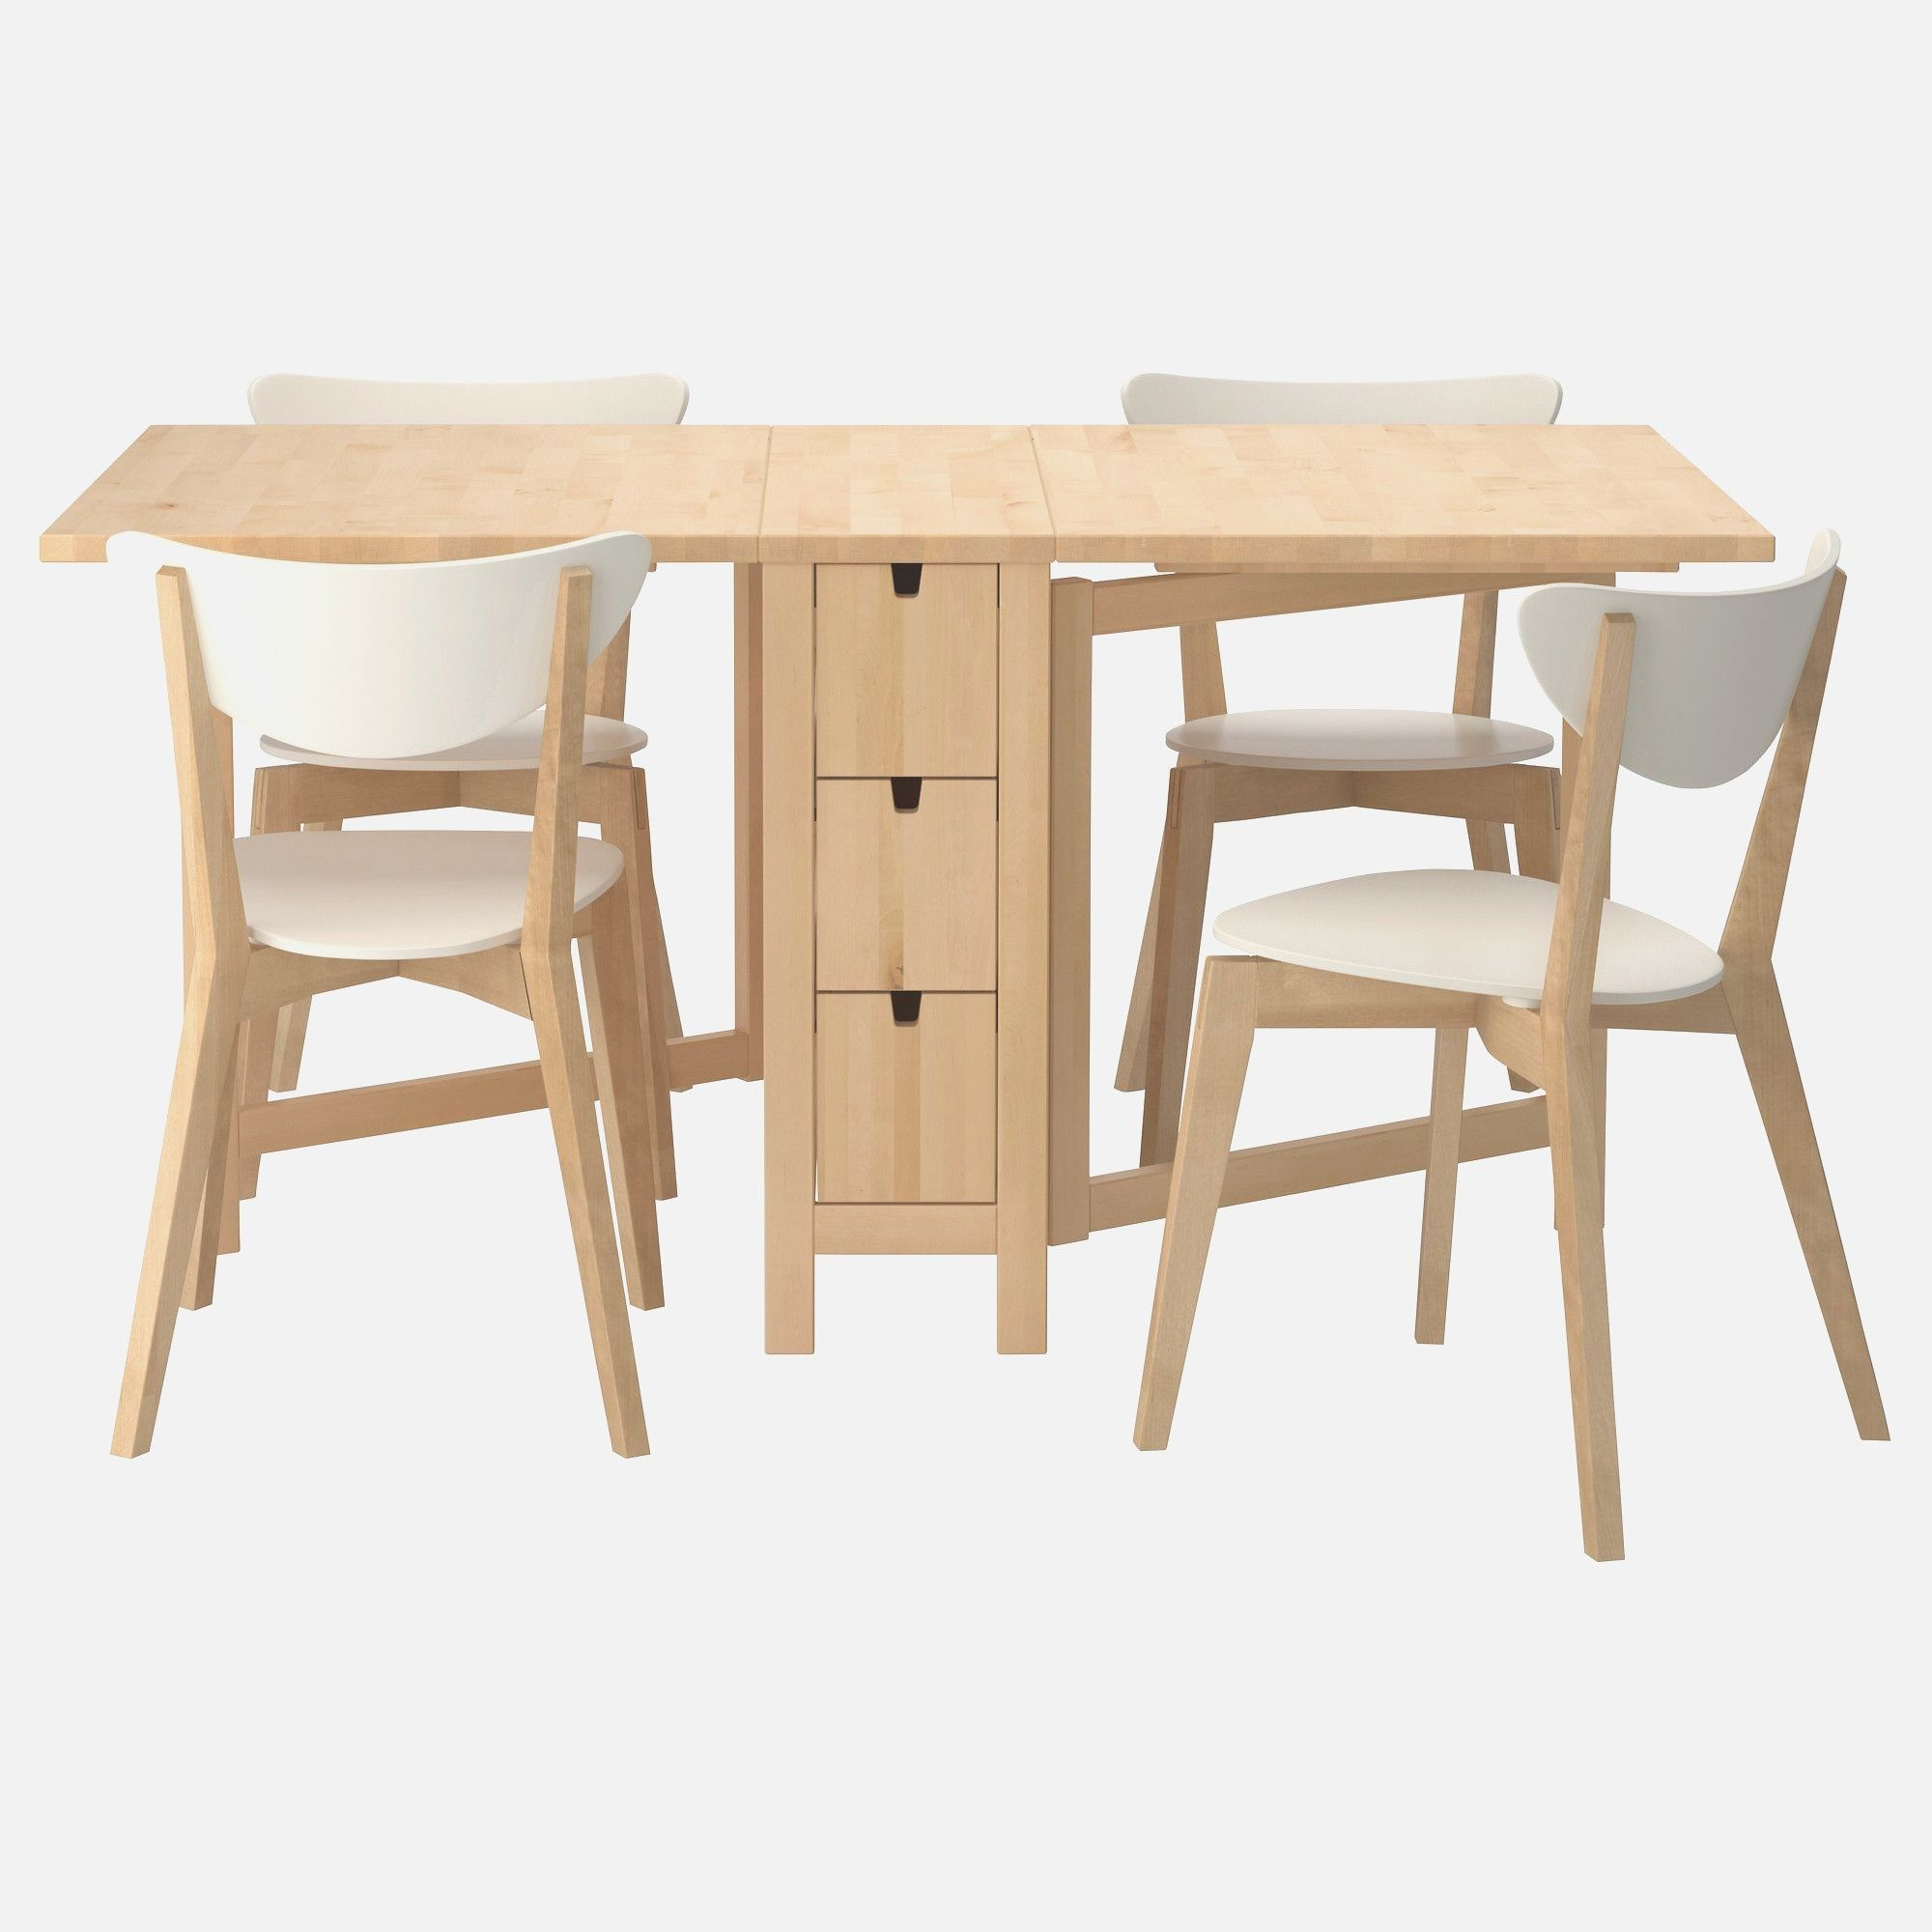 Small Kitchen Table with Storage - kitchen table wi, kitchen ...